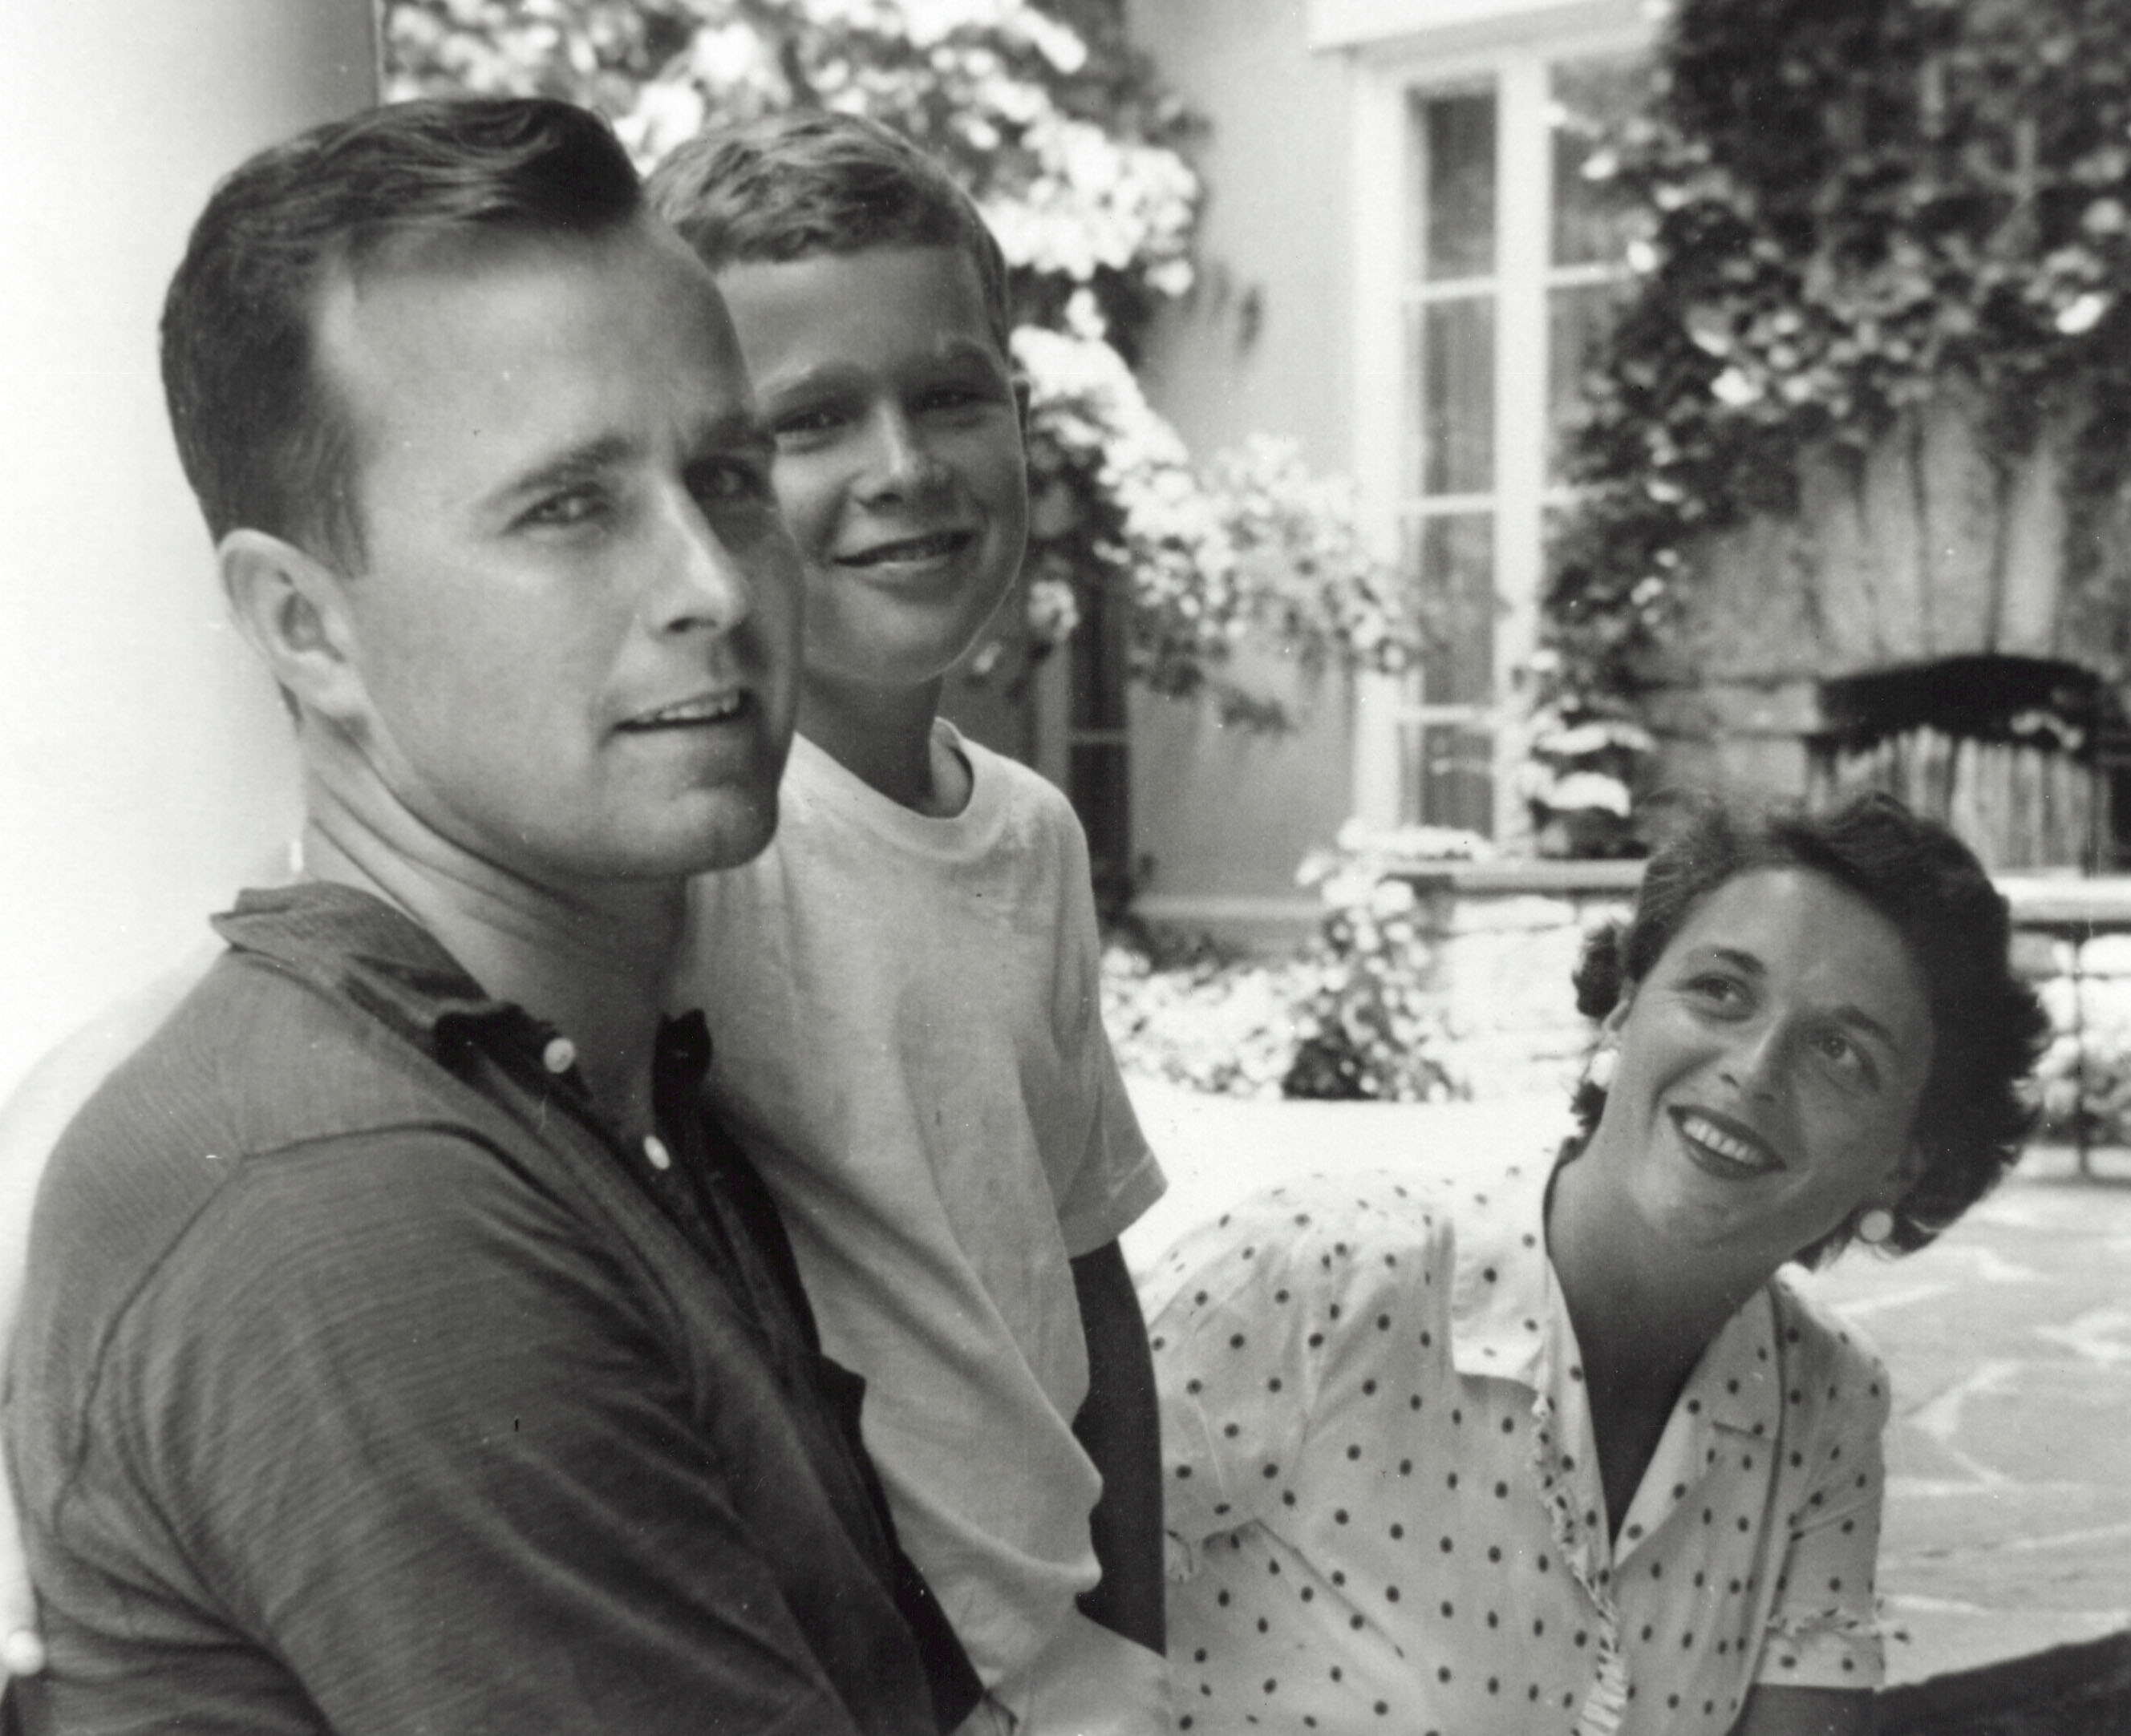 George W. Bush (C) poses with father George Bush and his mother Barbara Bush in Rye, New York, summer 1955.   Source: Getty Images